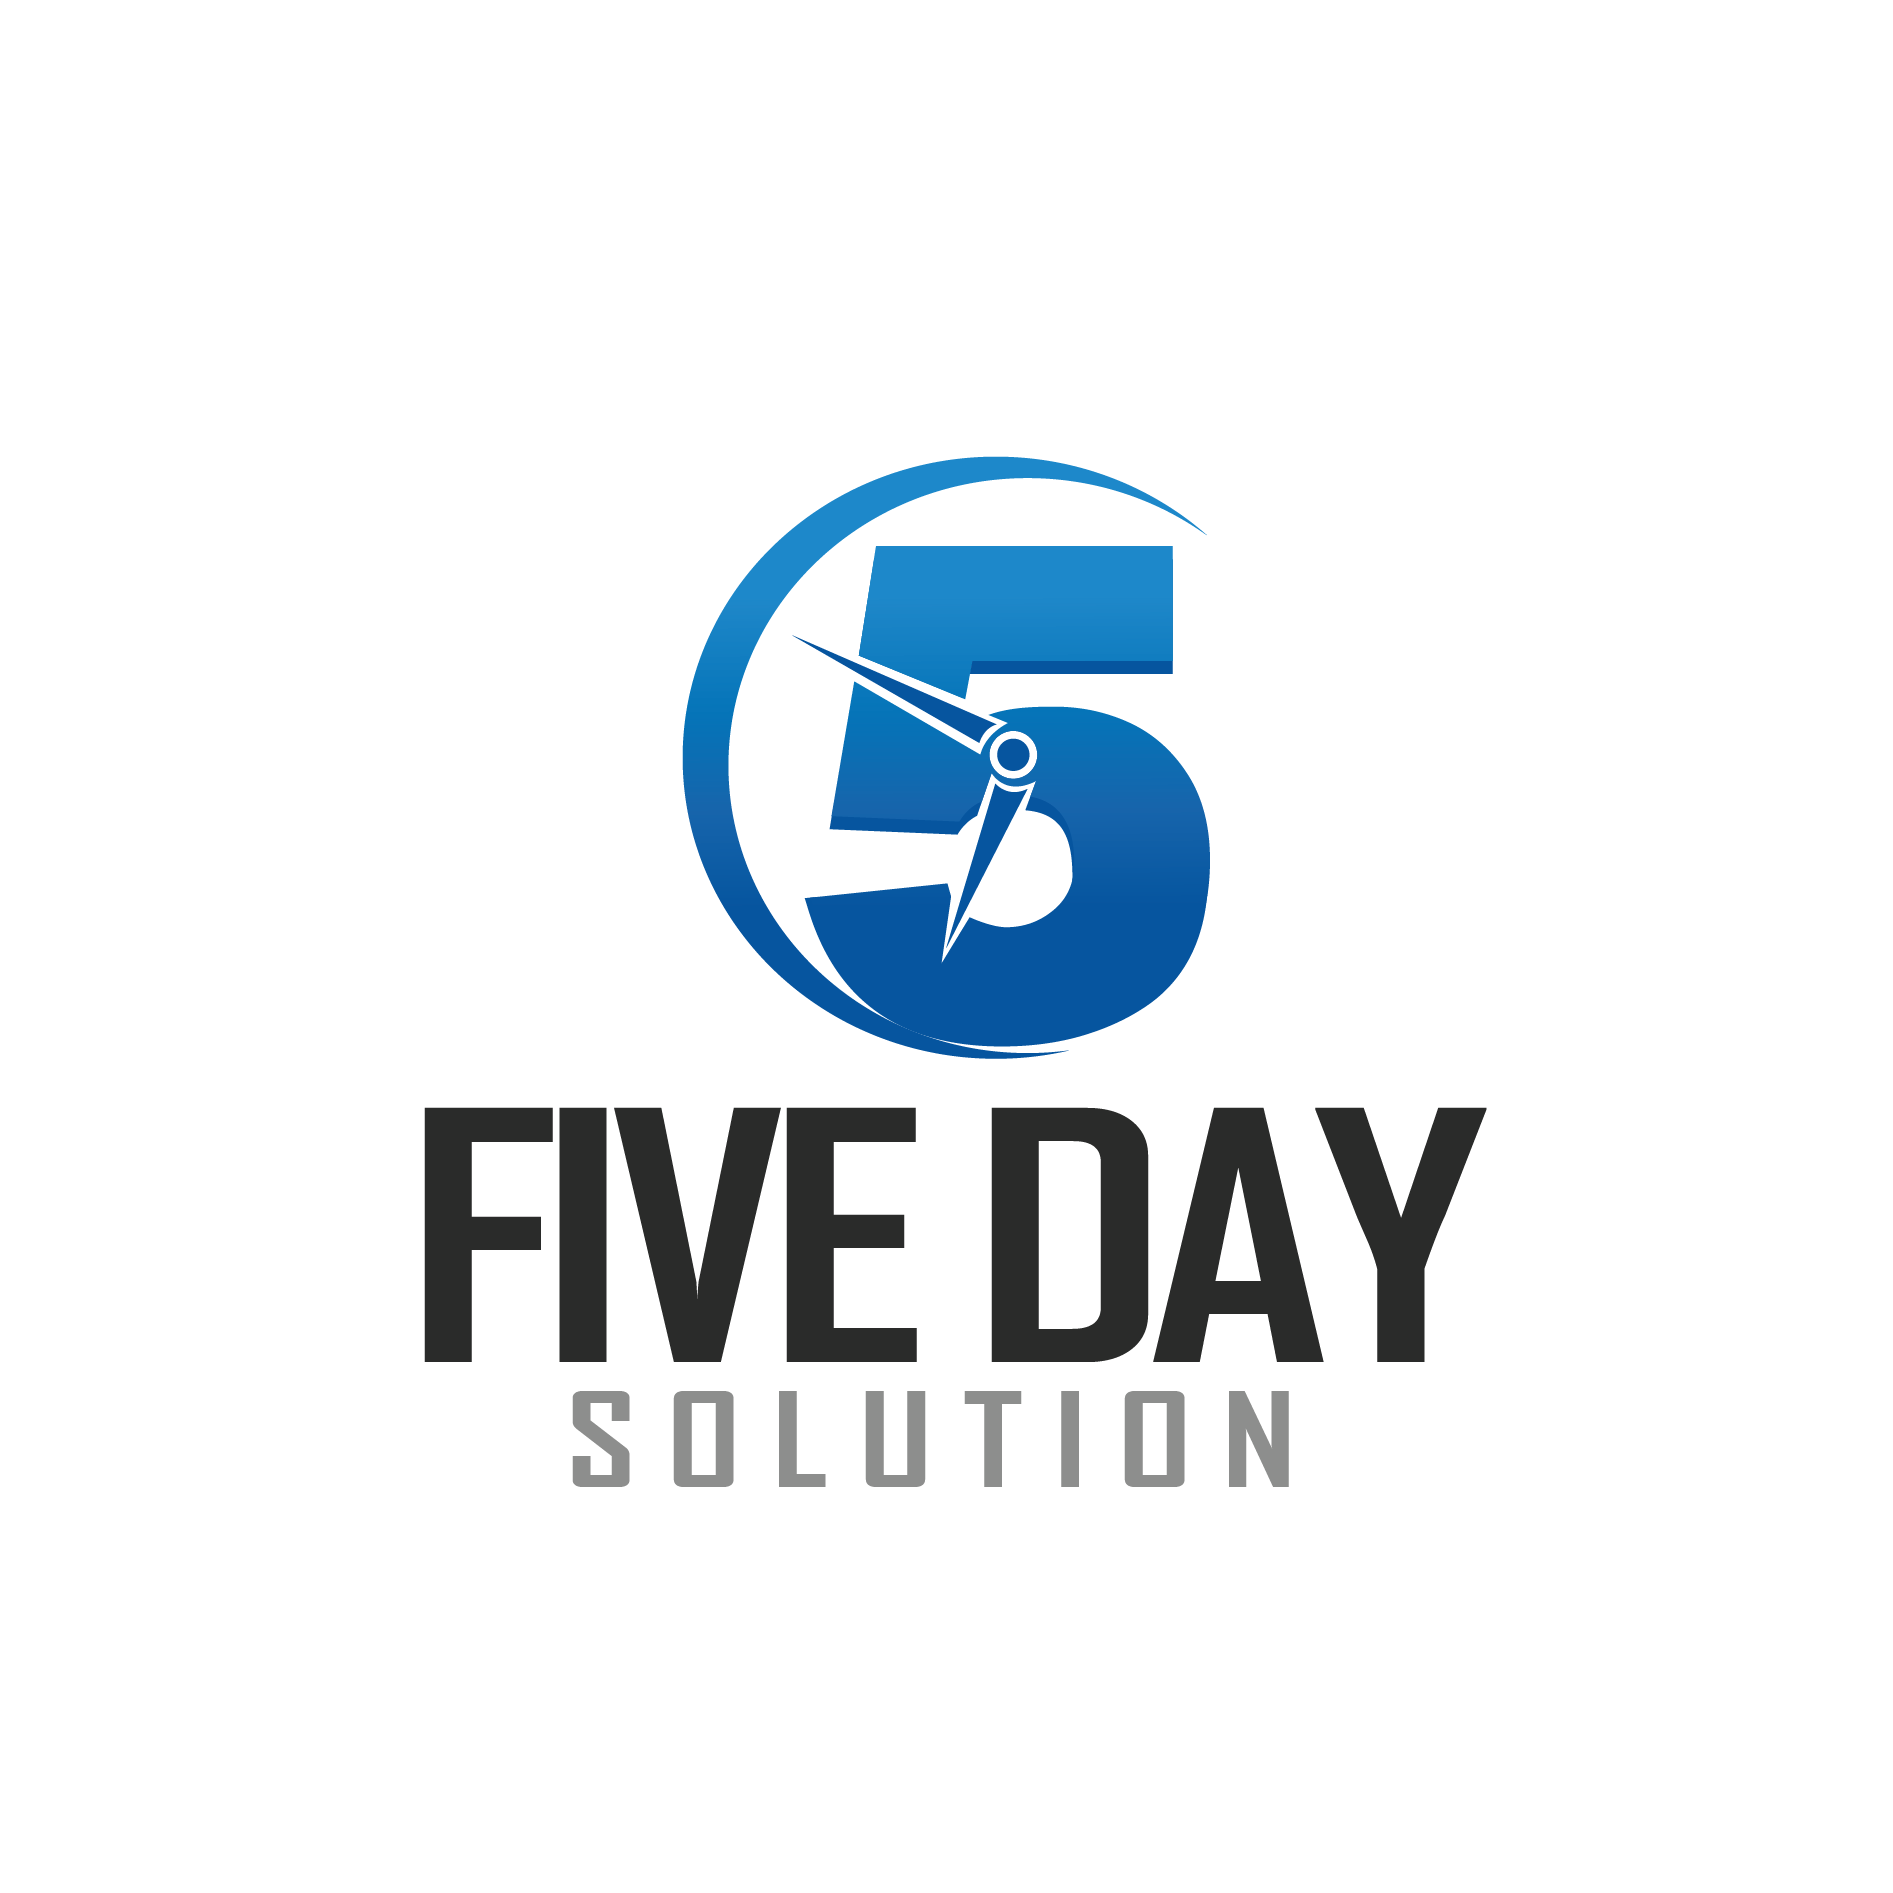 Five Day Solution